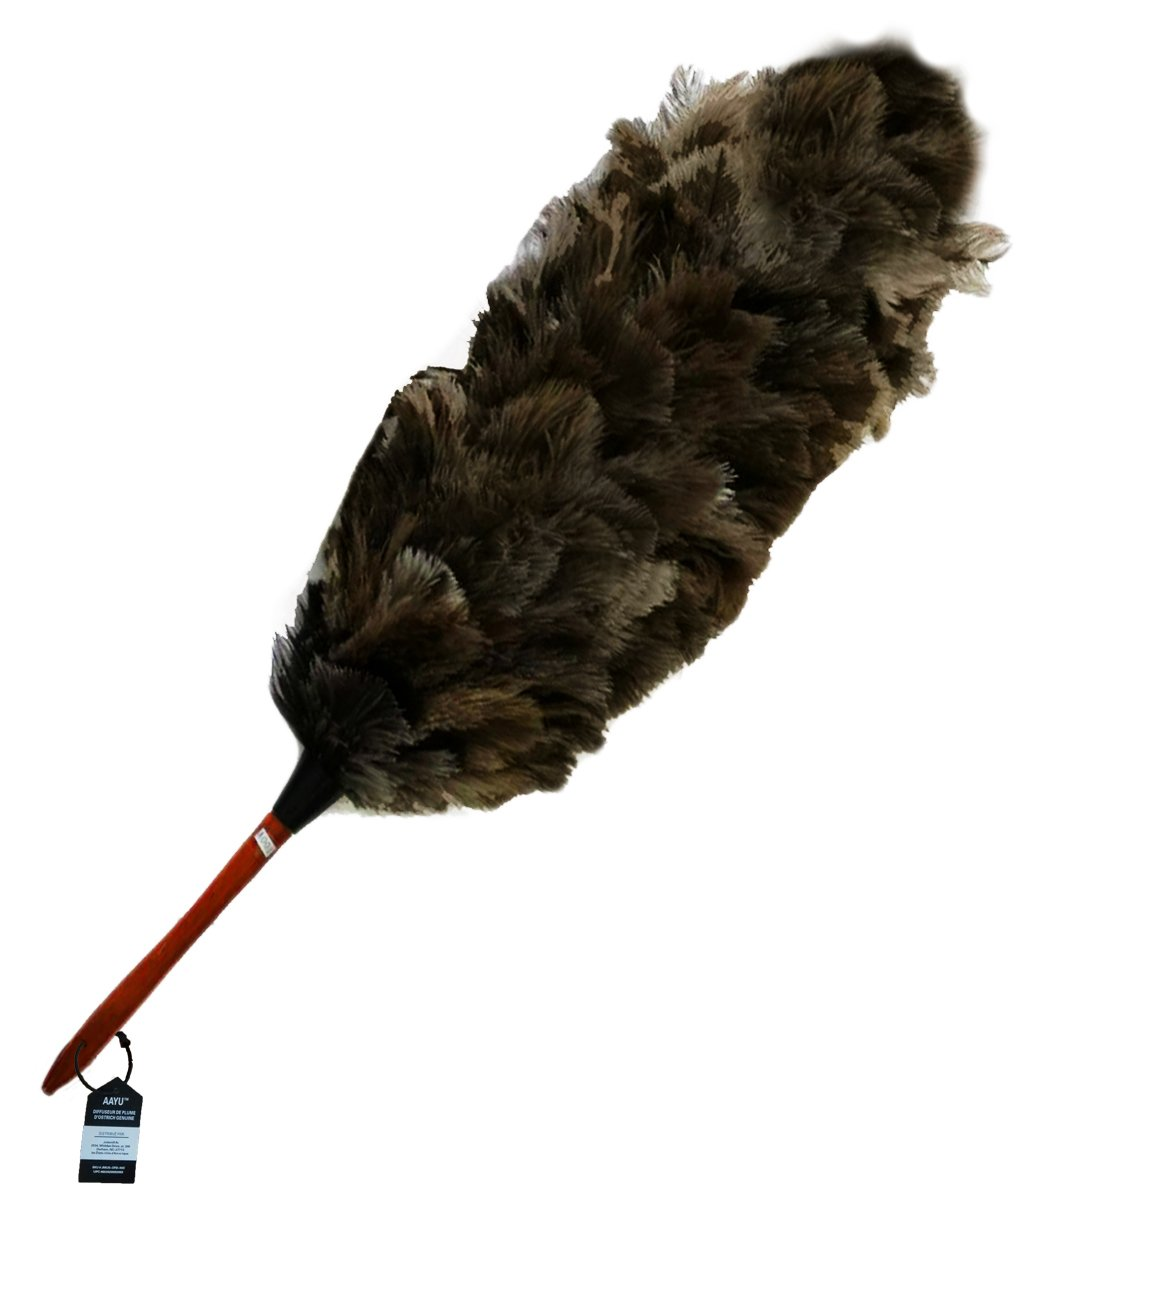 Ostrich Feather Duster Professional for Car and Home | Natural Duster for Cleaning and Feather Moping | Genuine Ostrich Feather Duster Long Wooden Handle | Eco-Friendly | Easy to Clean Dust 26 inch